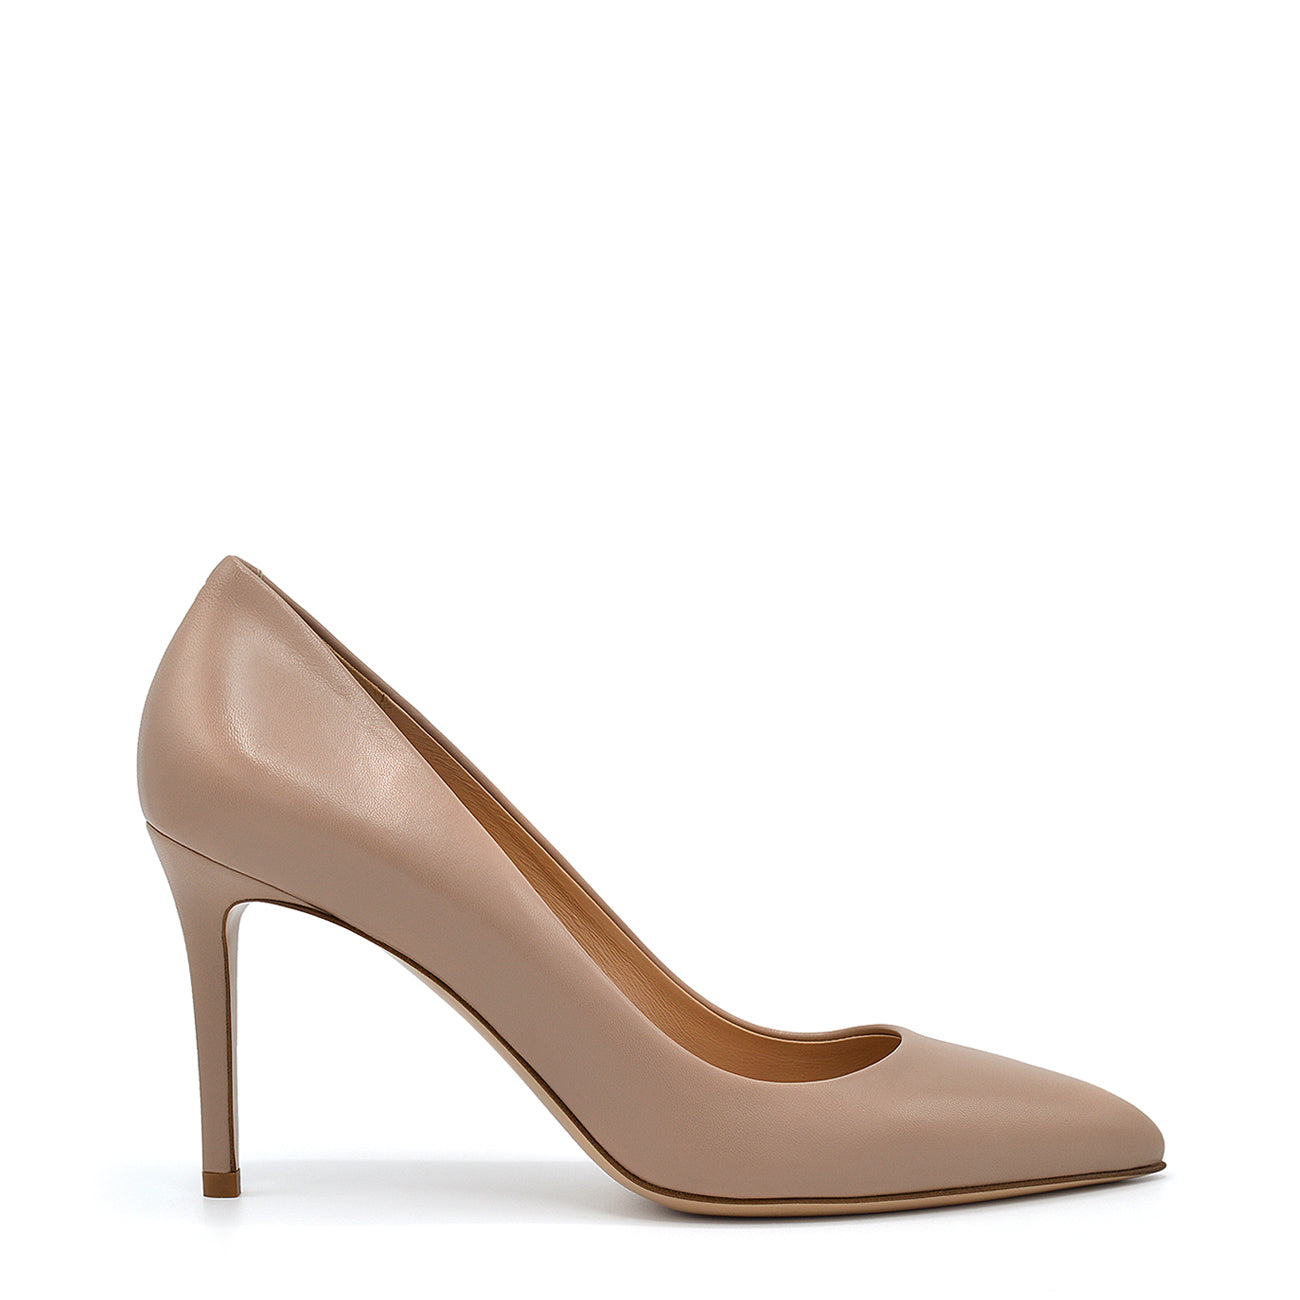 Diva. <br> Taffy beige nappa leather pumps